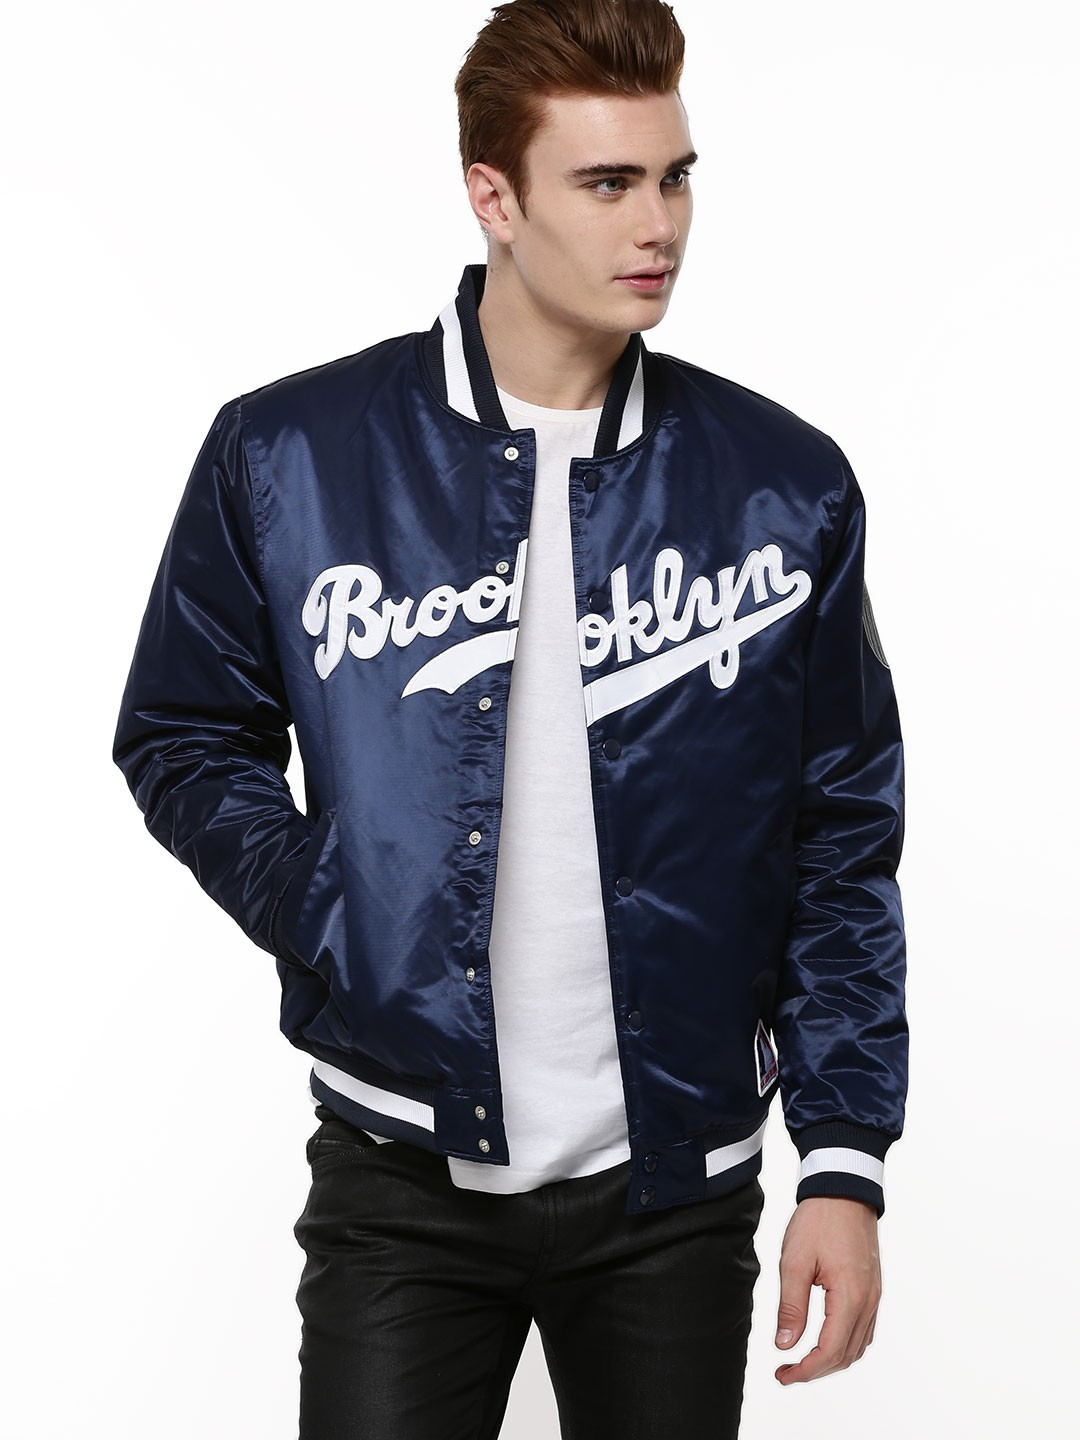 Majestic Baseball Jackets - Coat Nj